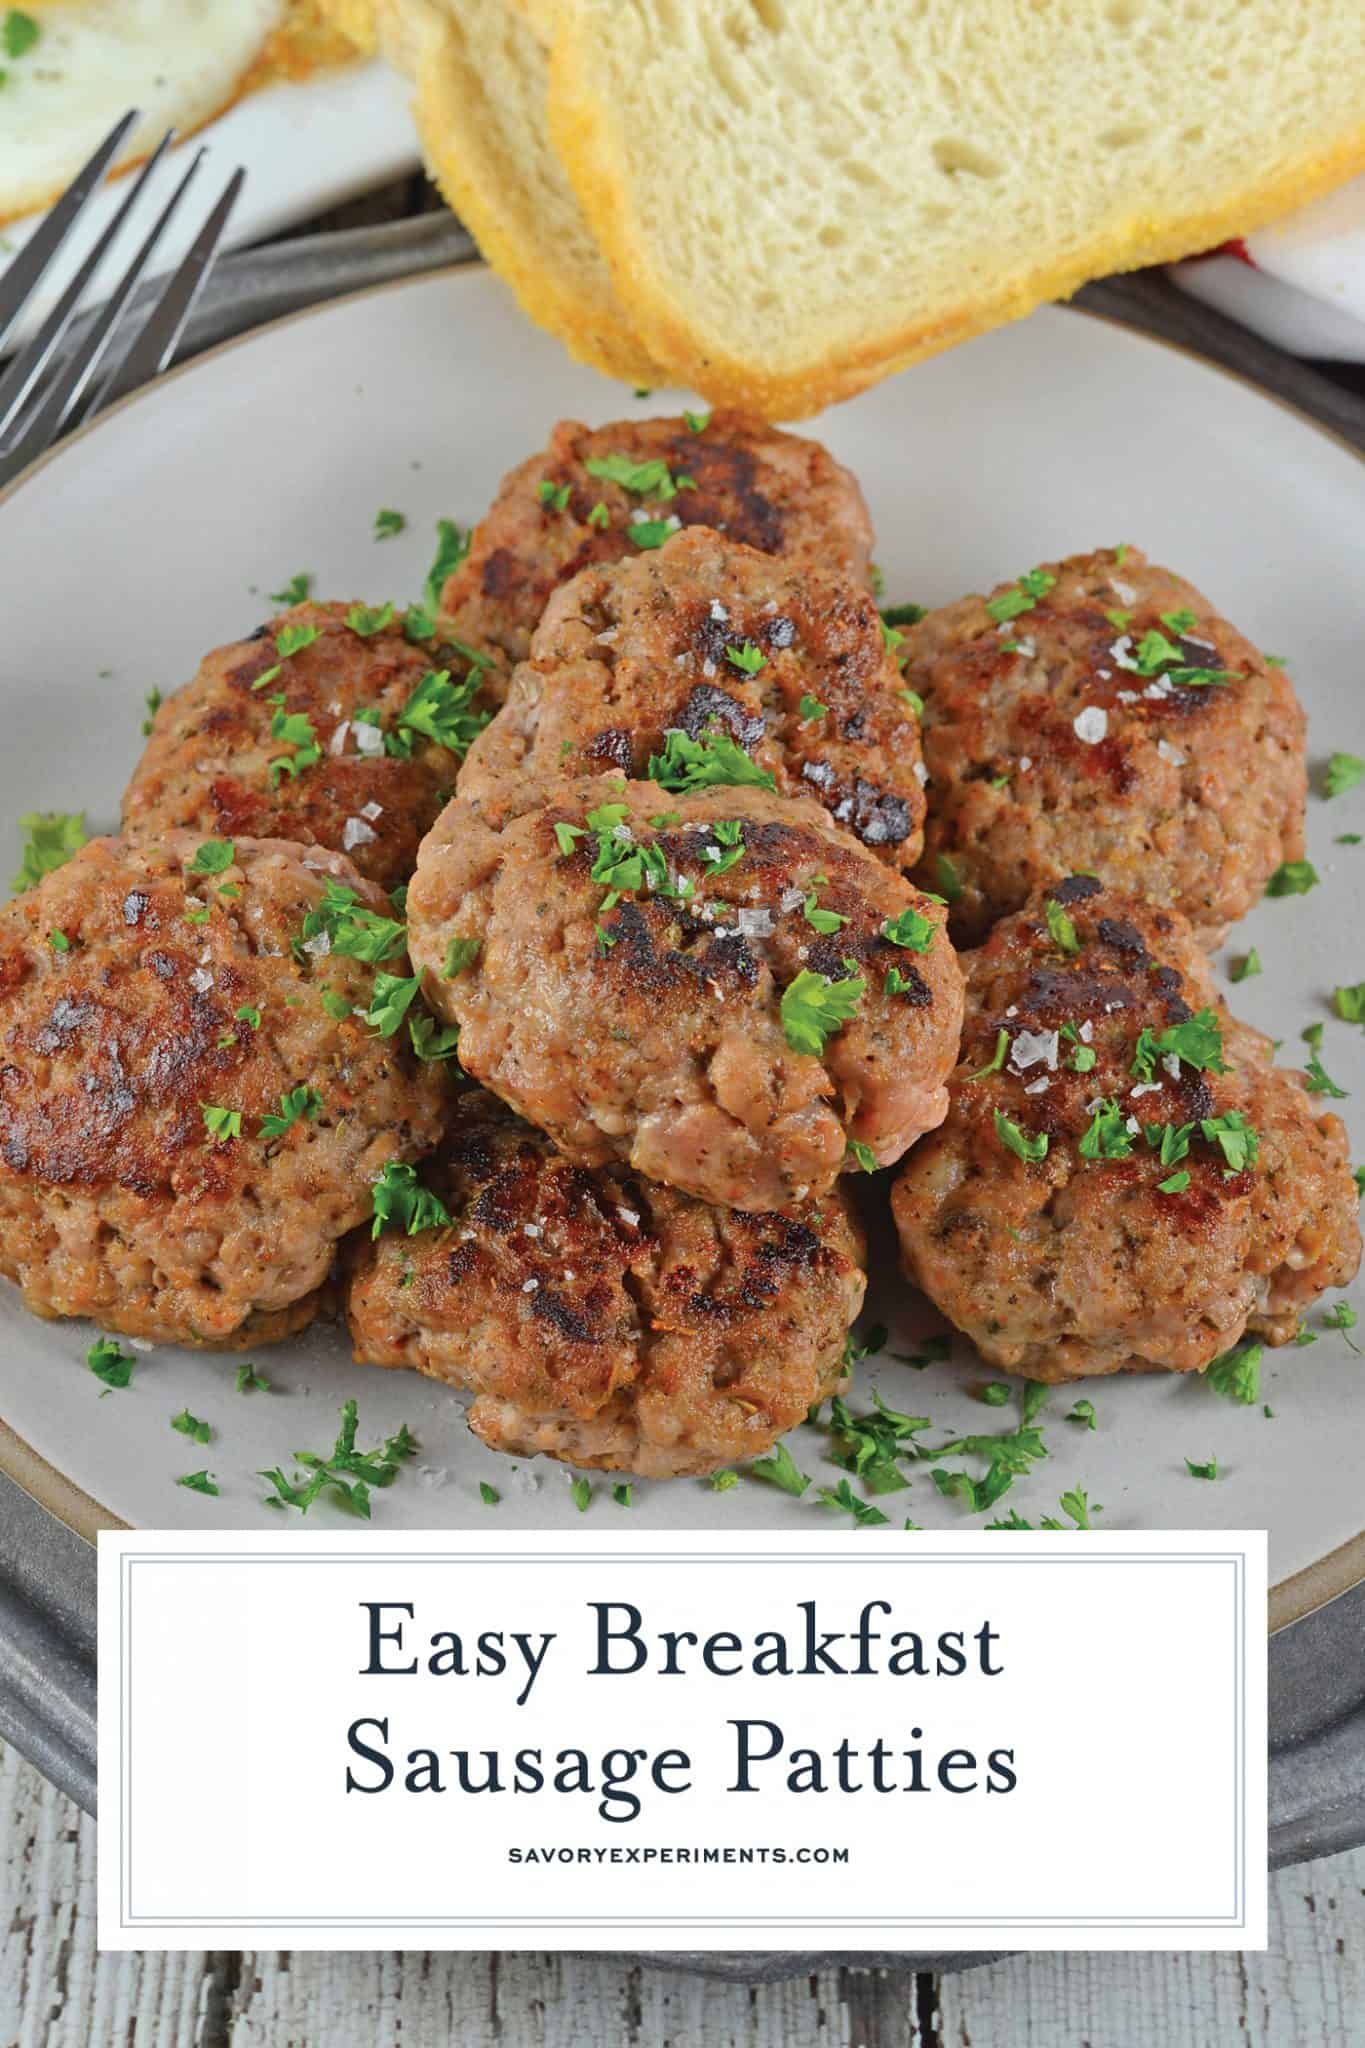 Homemade Breakfast Sausage is super easy using my proprietary blend of breakfast sausage seasoning. Add eggs and toast to complete your delicious breakfast. #breakfastsausagerecipe #breakfastsausageseasoning #homemadebreakfastsausage www.savoryexperiments.com